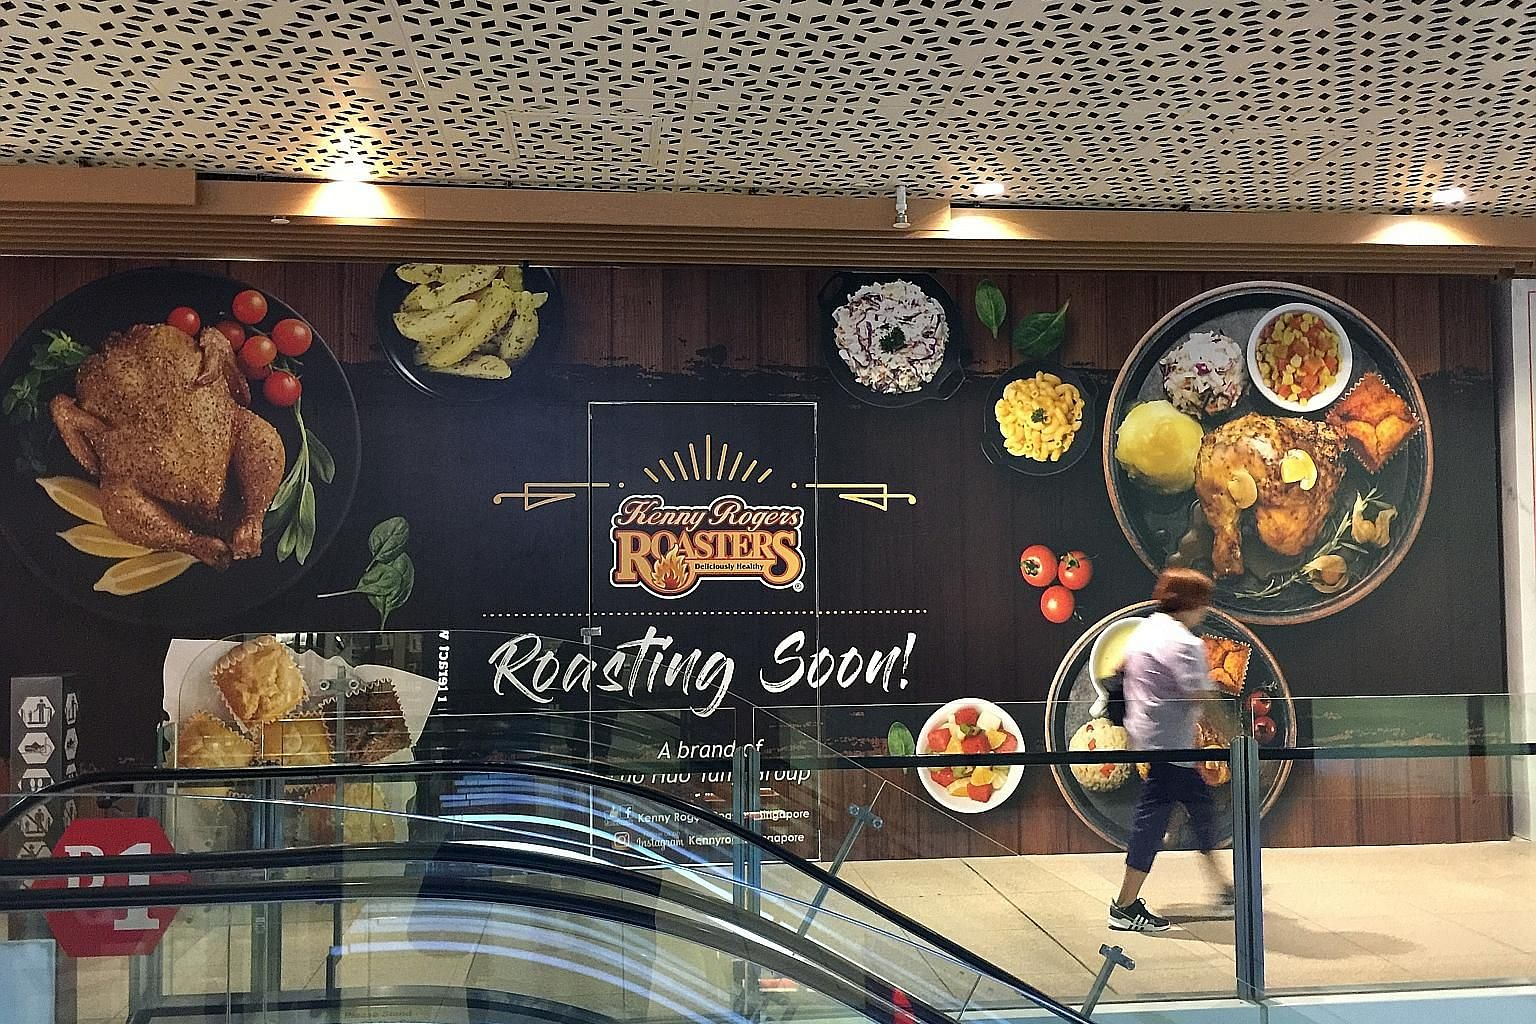 The new Kenny Rogers Roasters at Jem will sport a modern new look and be halal-certified.